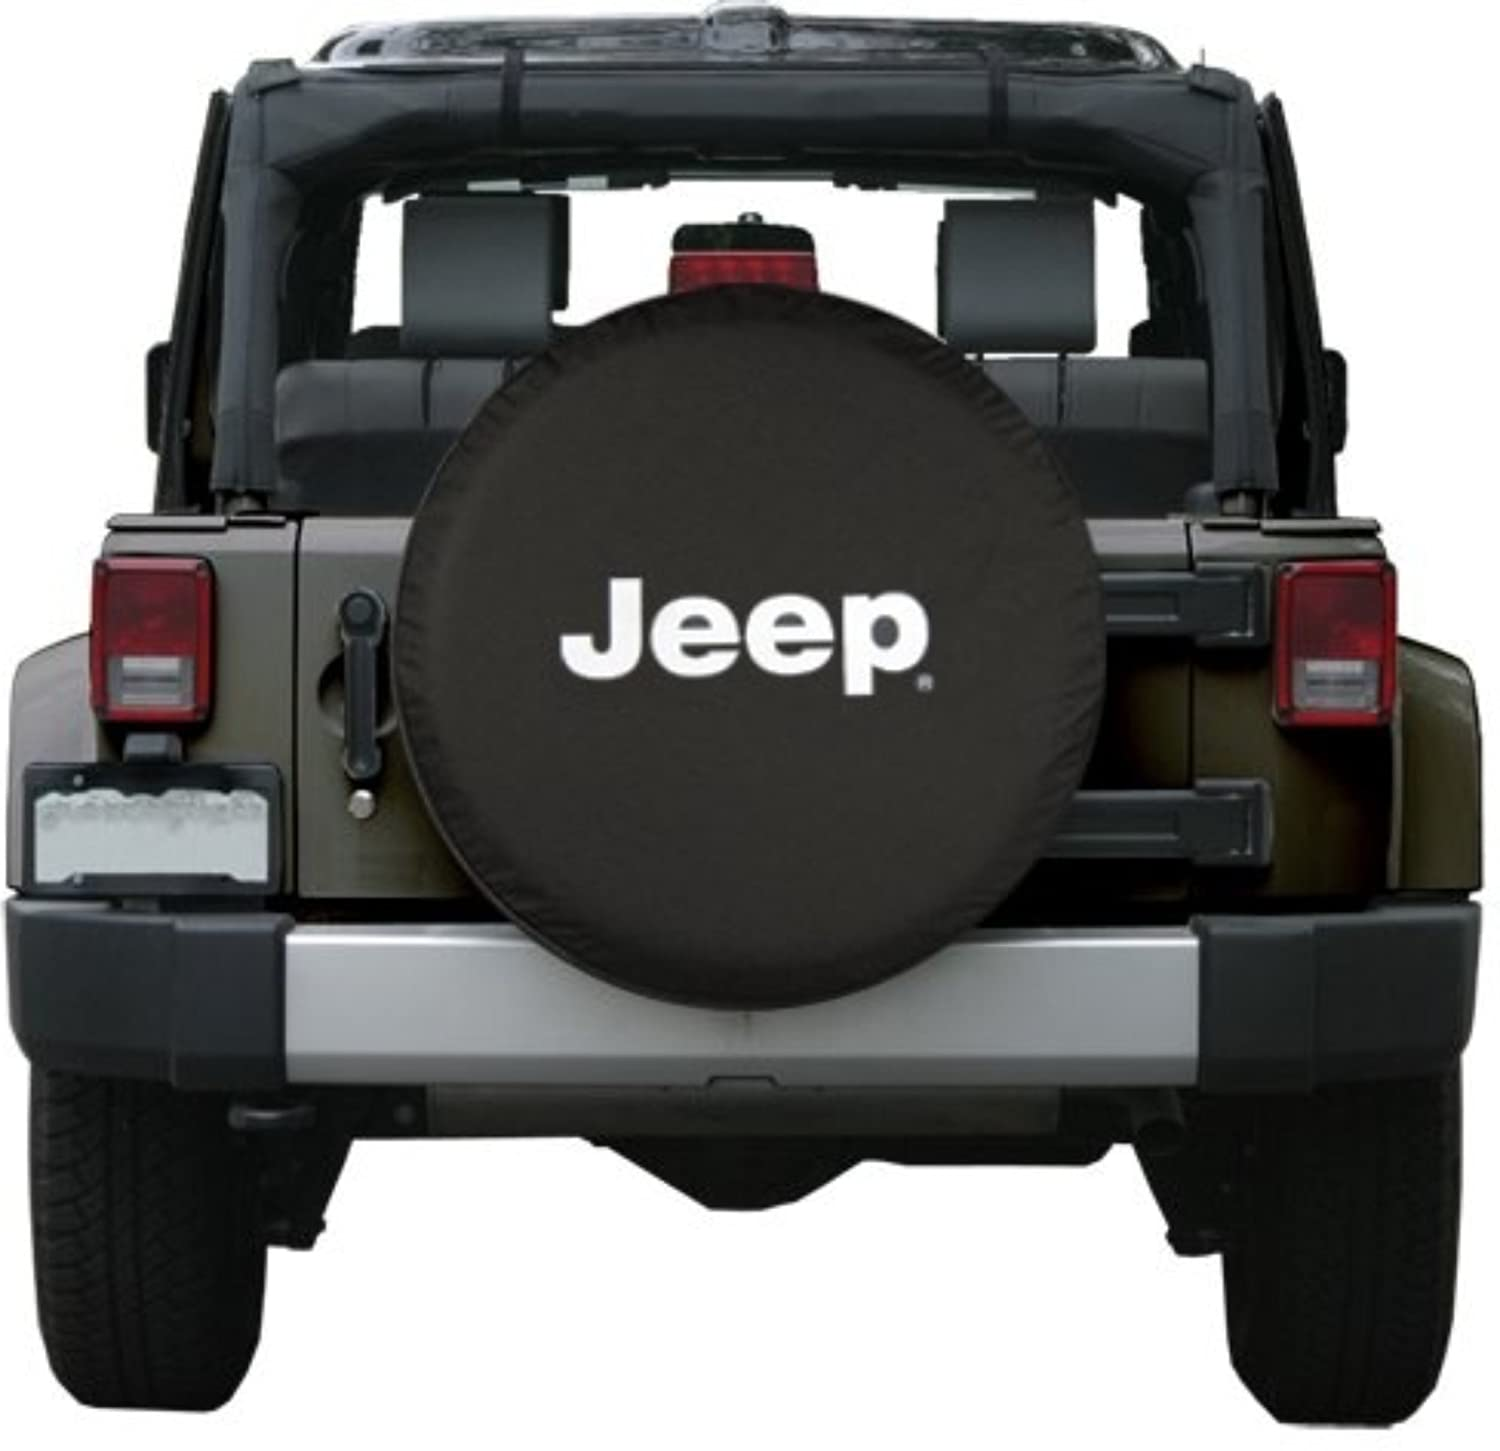 had painted by on i etsy spare jeep pin cover pit bull my covers tire someone that